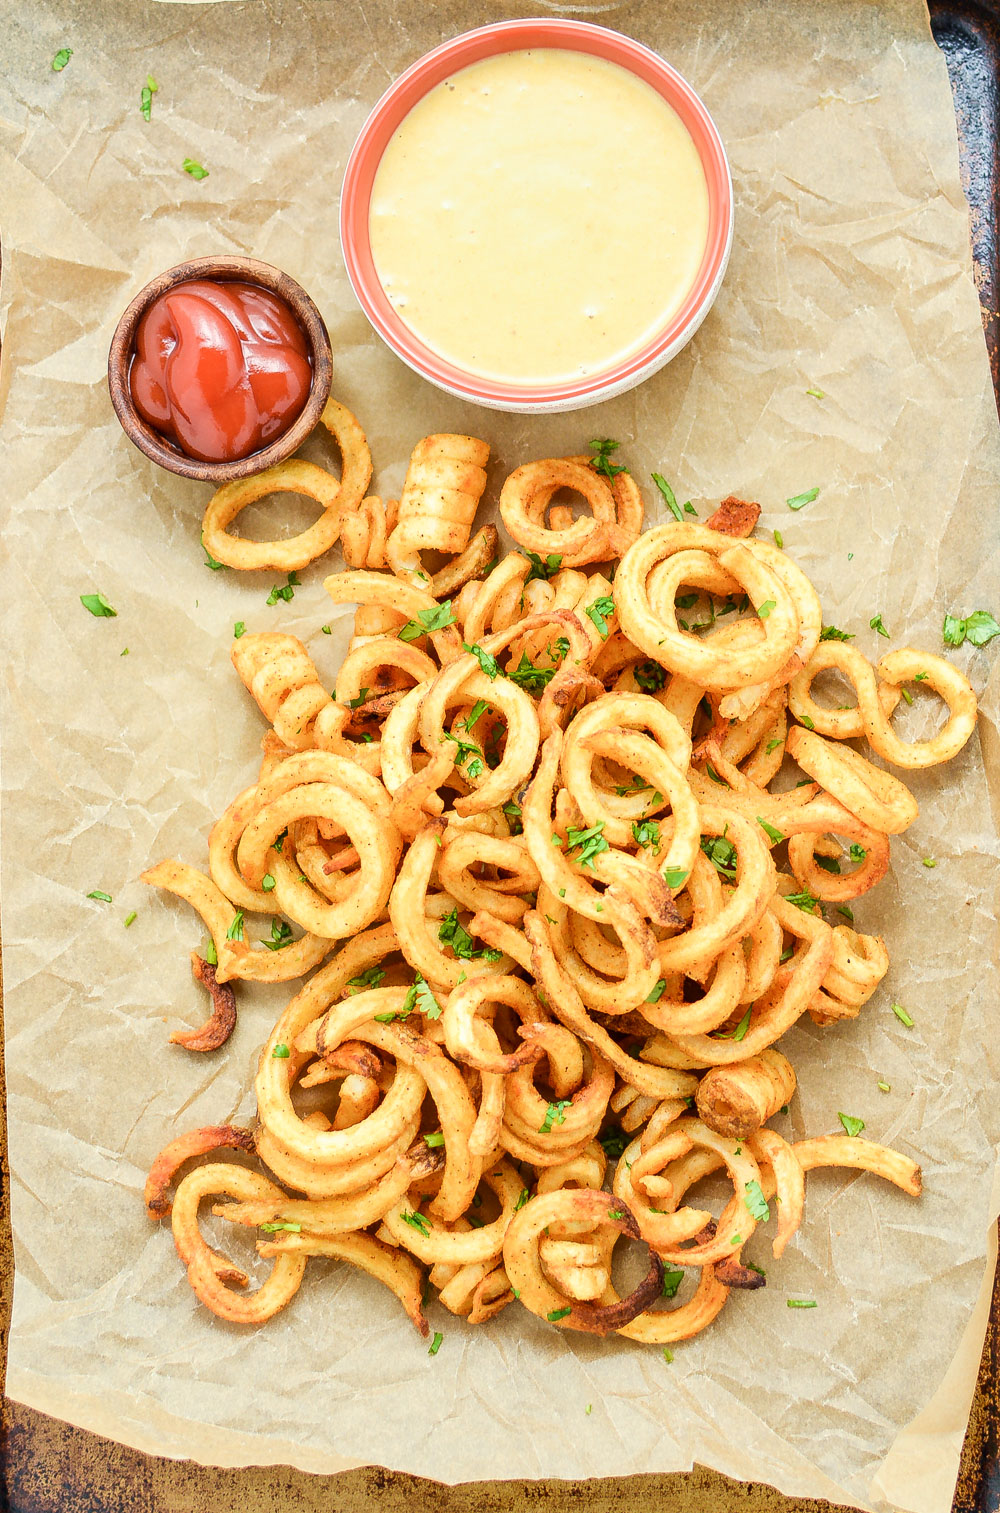 Baked Curly Fries with Mustard-BBQ Dipping Sauce are so easy to make at home and are the perfect side dish!